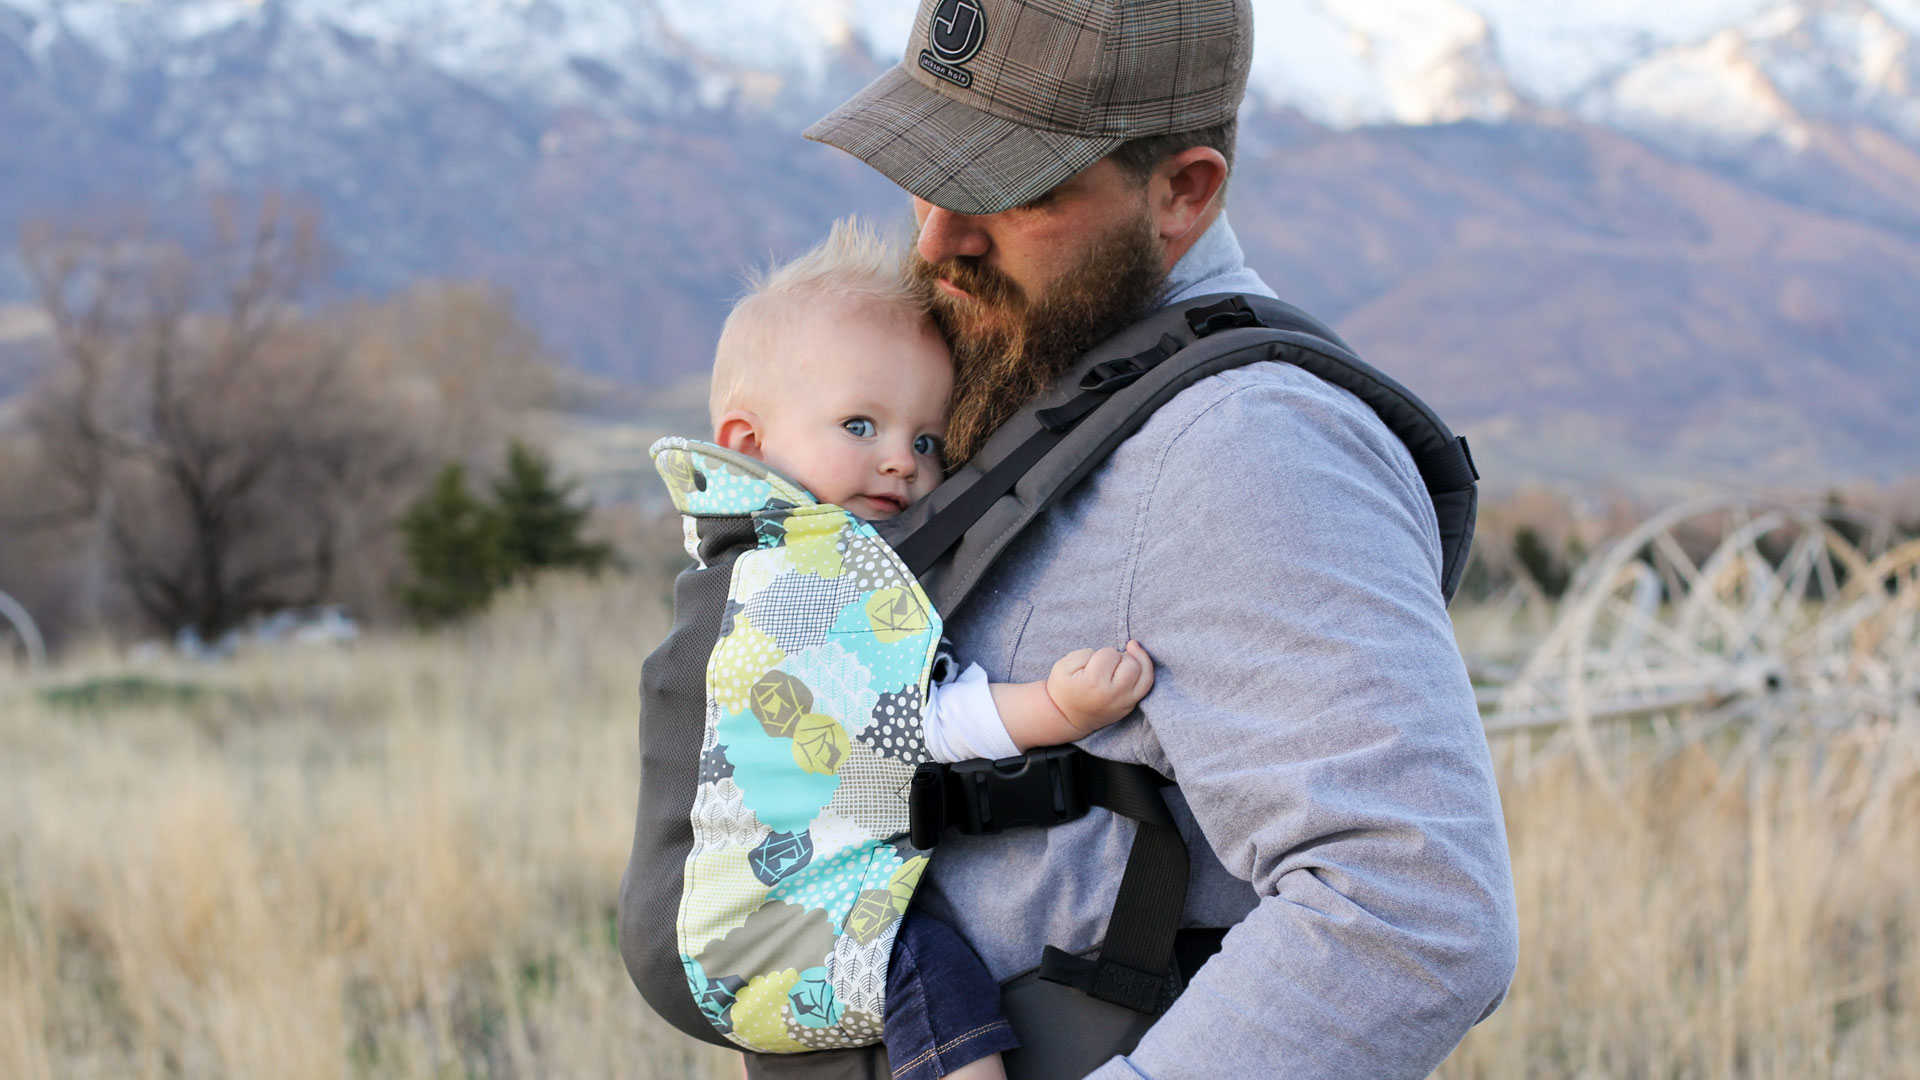 Baby Carriers by Age - Best Baby Carriers for toddlers from 18 to 36 months old